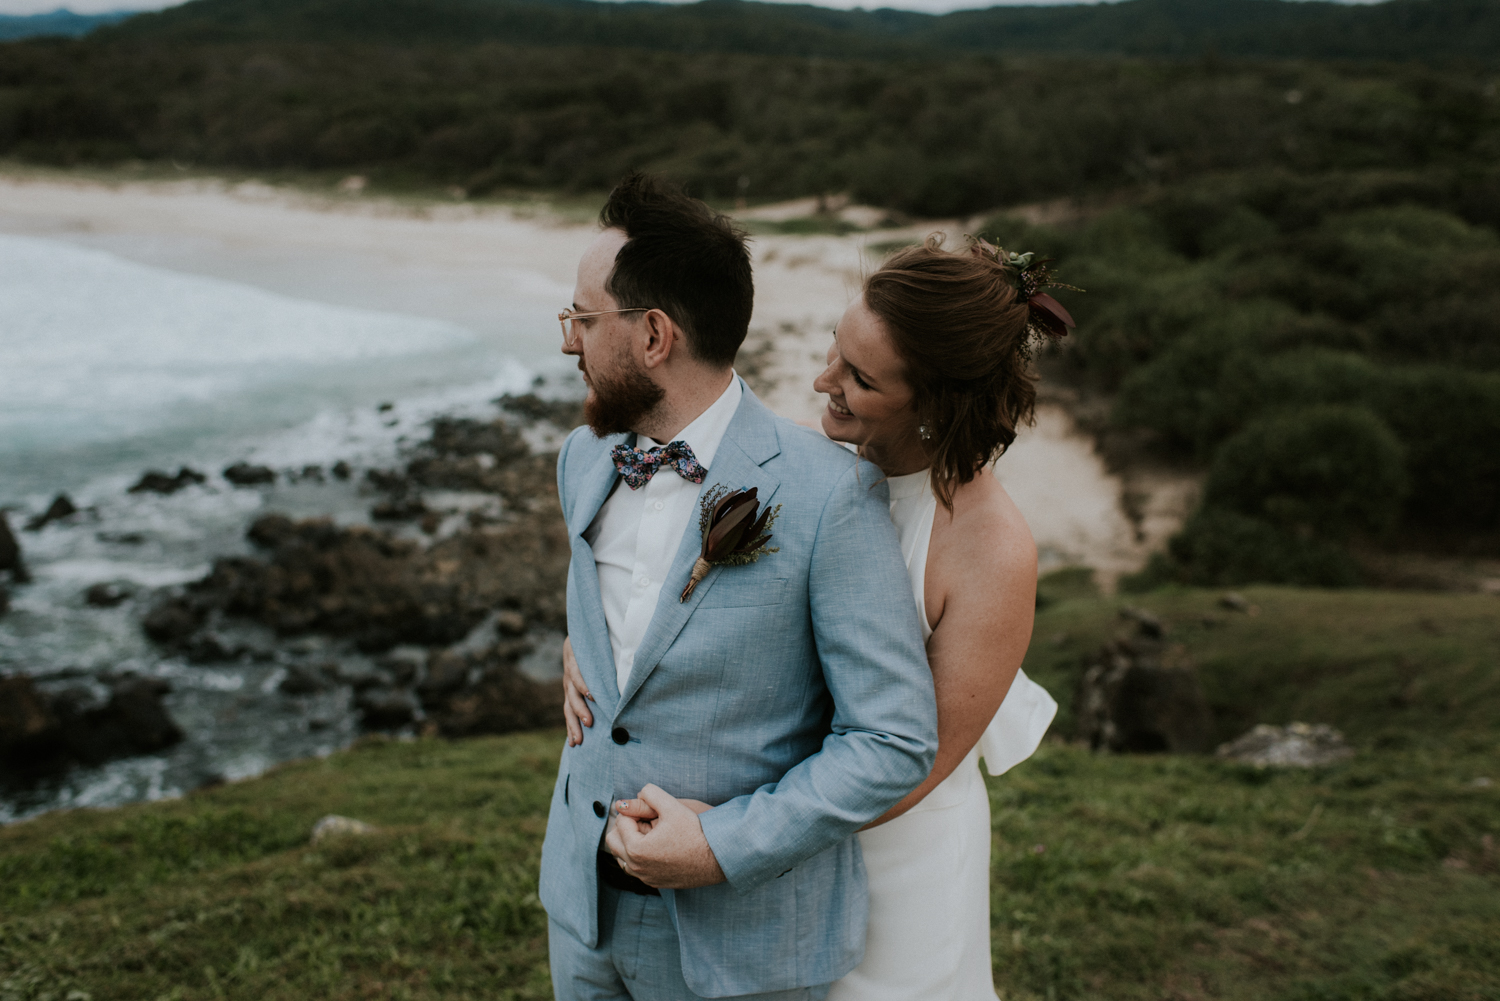 Brisbane Wedding Photographer | Tweed Coast Elopement Photography-70.jpg